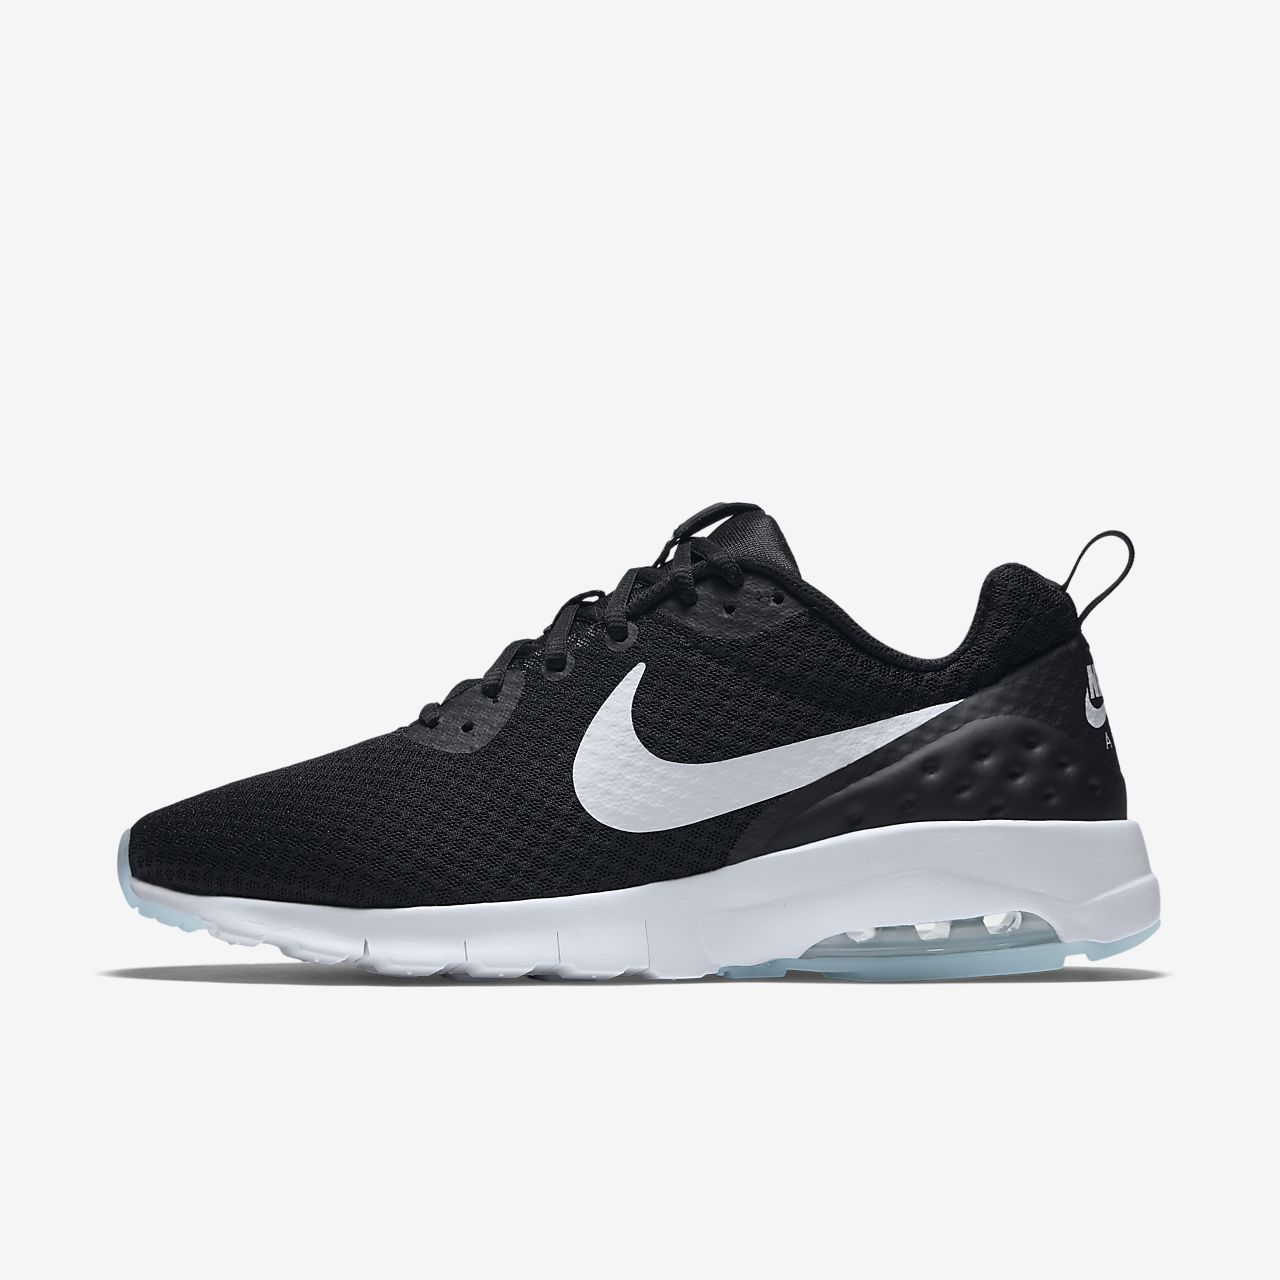 the best attitude 0d66a 3474d ... Buty męskie Nike Air Max Motion Low